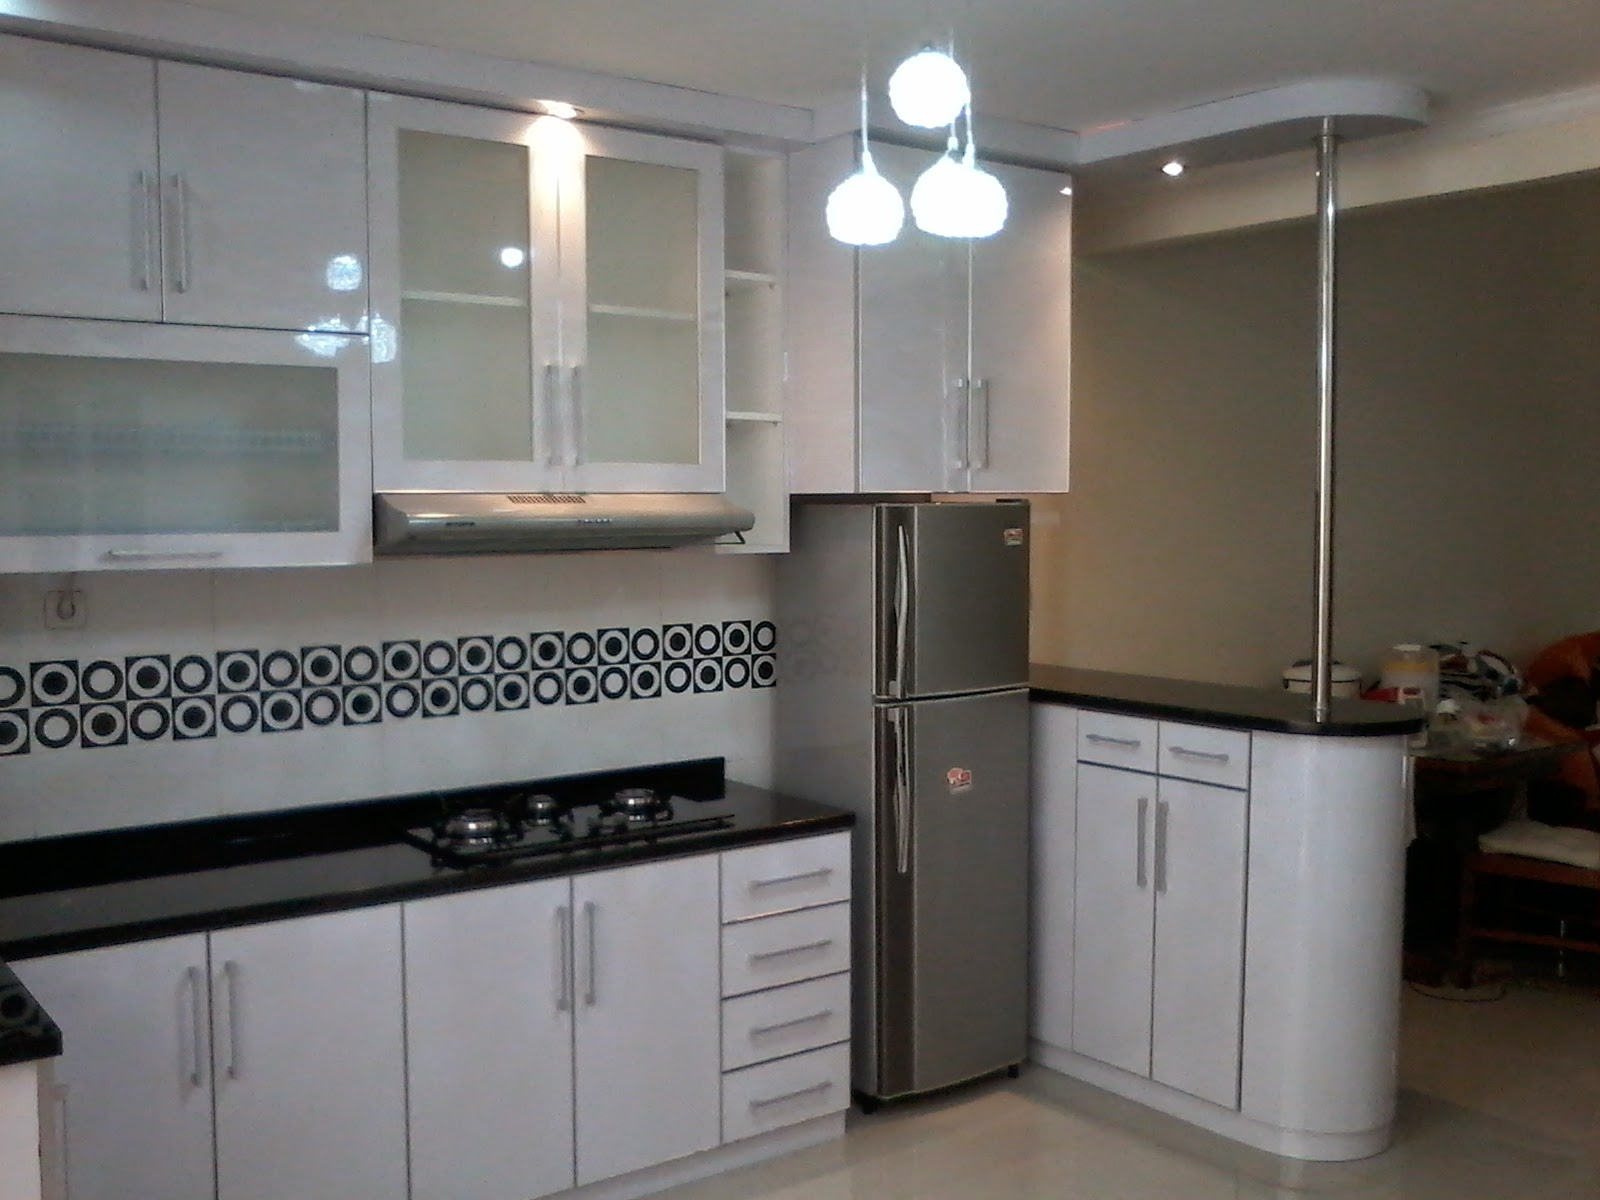 Desain dapur minimalis sederhana jasa kitchen set murah for Kitchen set hitam